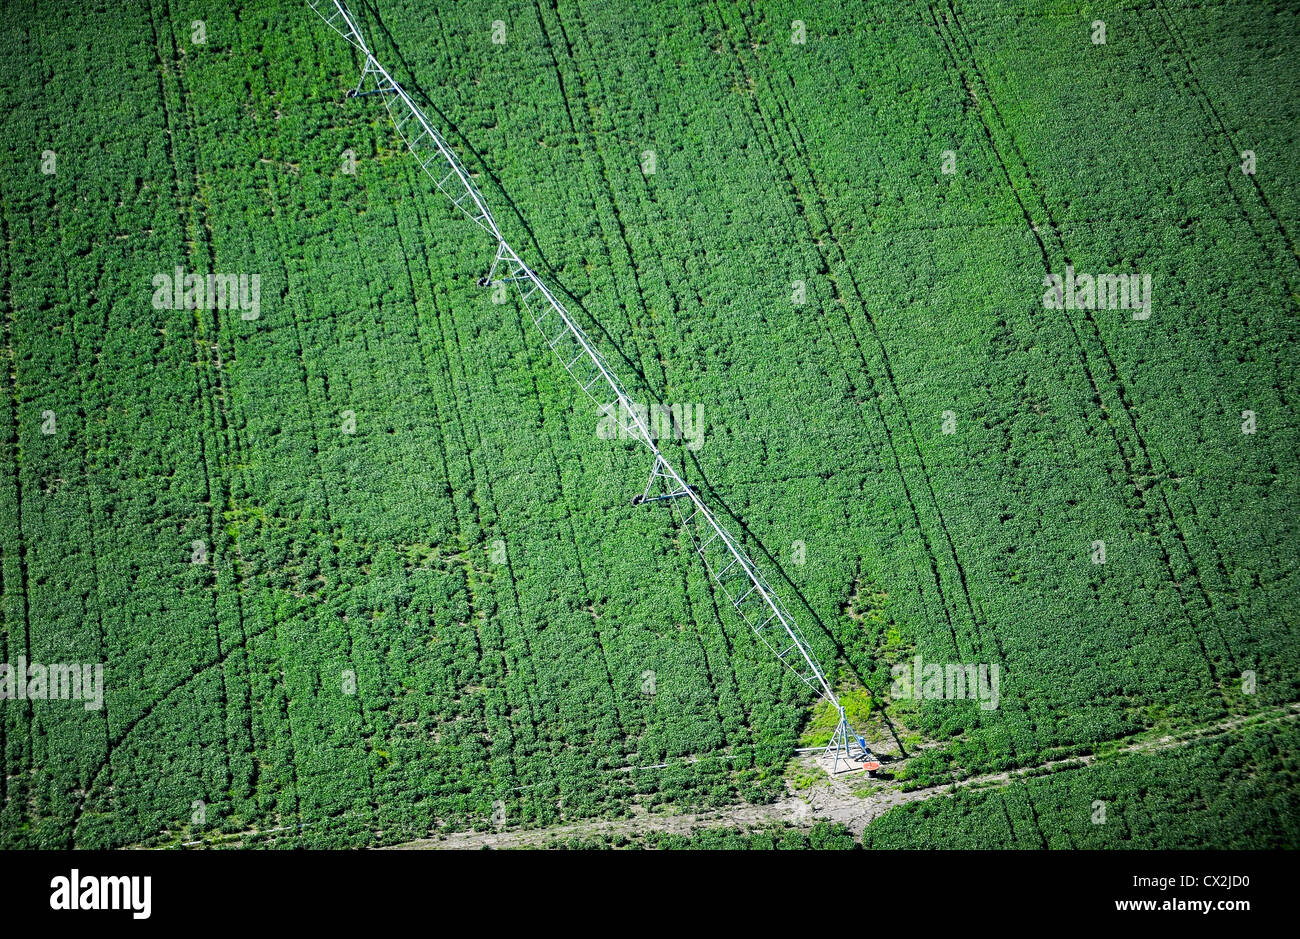 URUGUAY Bella Unión Monsanto GMO soya bean field with irrigation system, the soya is exported to China as fodder - Stock Image